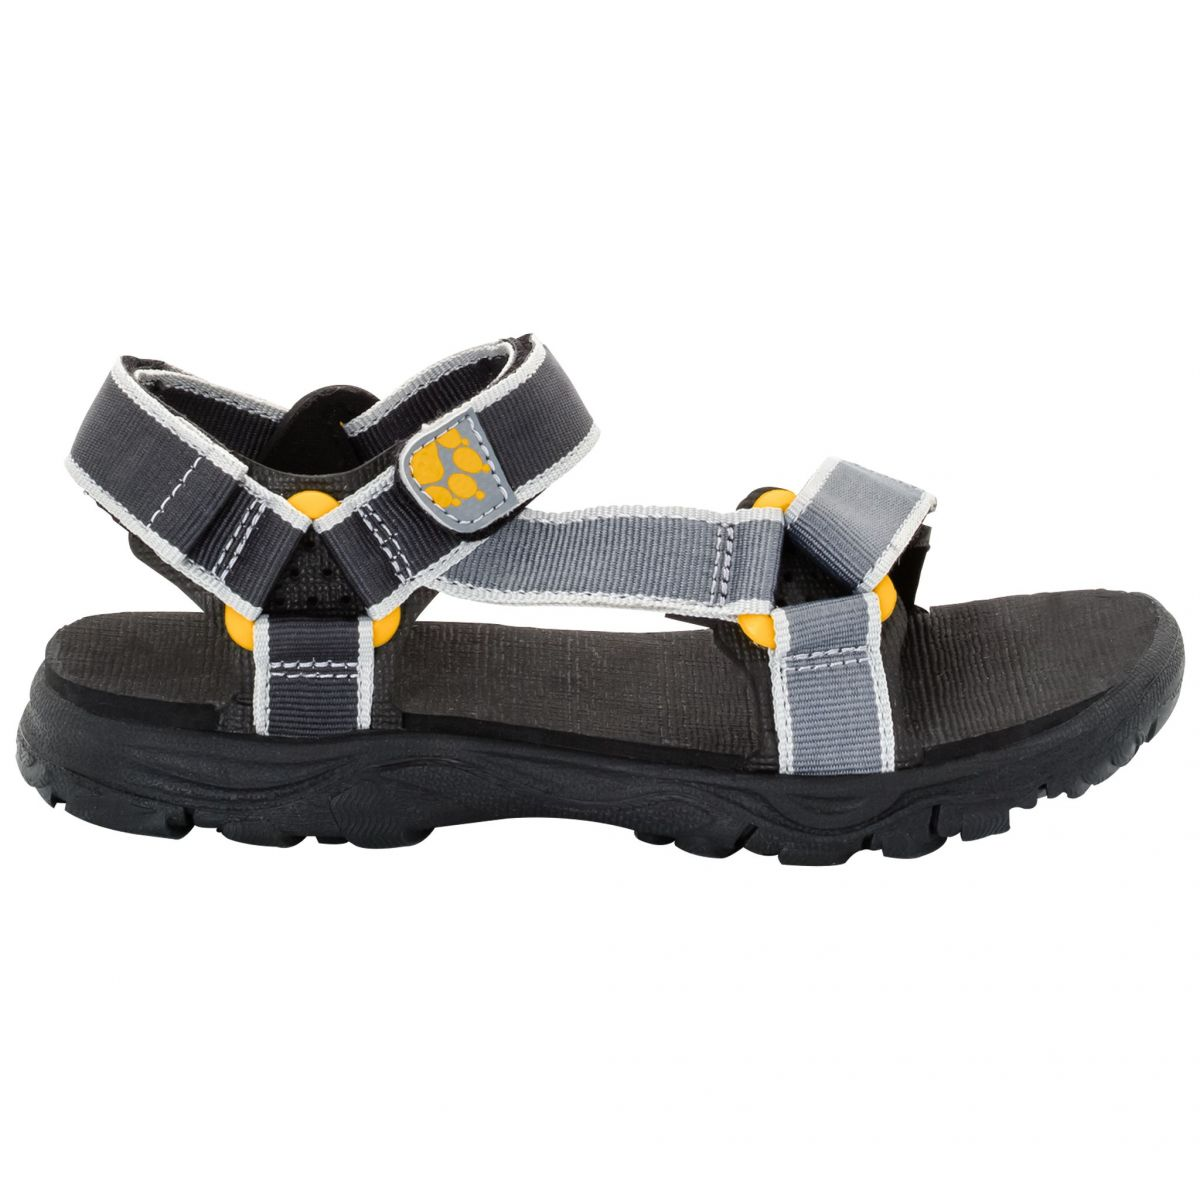 jack wolfskin kinder sandalen seven seas 2 sandal burly yellow xt sport schuster. Black Bedroom Furniture Sets. Home Design Ideas